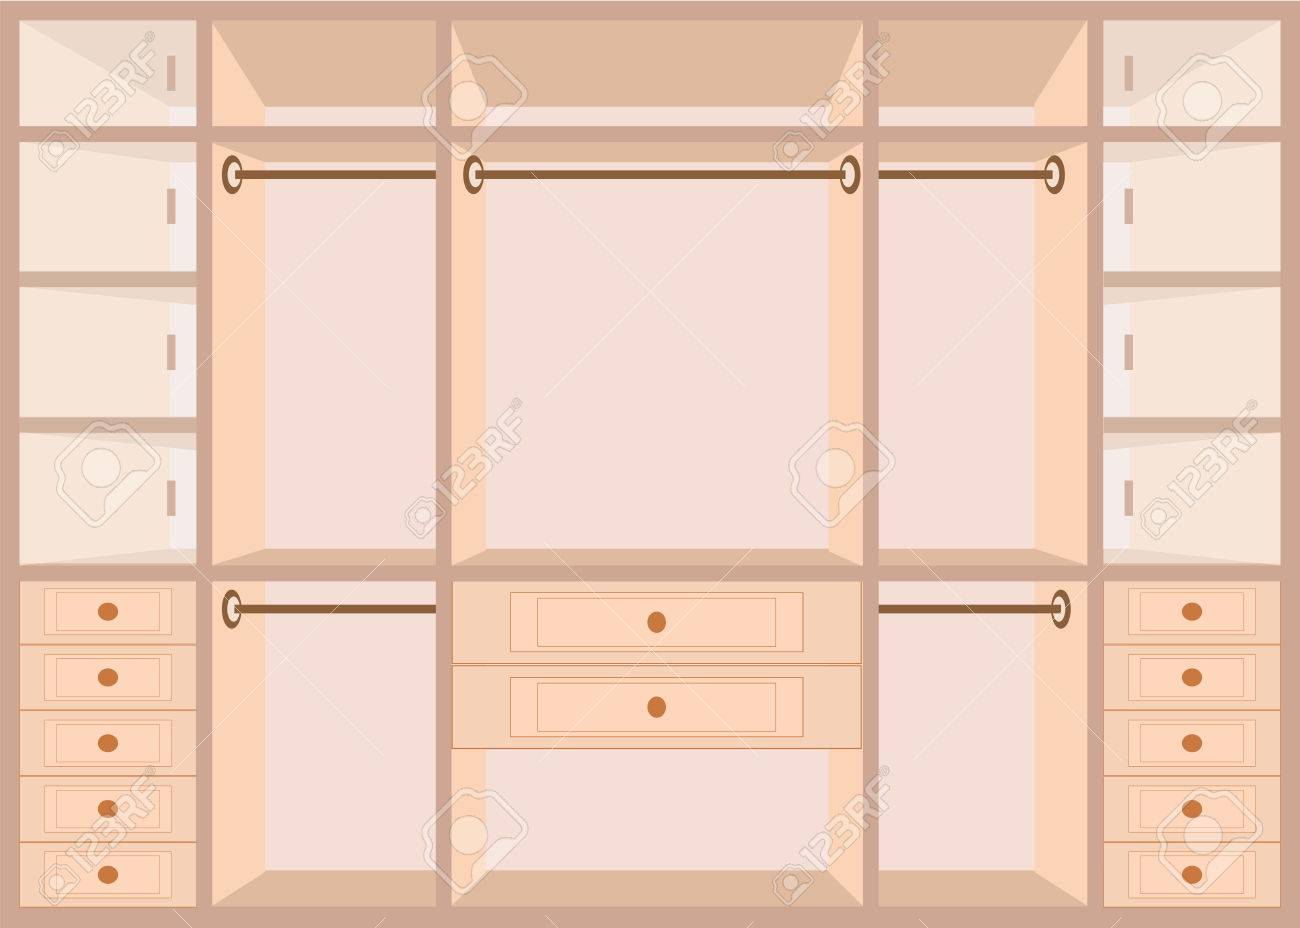 Flacher Kleiderschrank Stock Photo